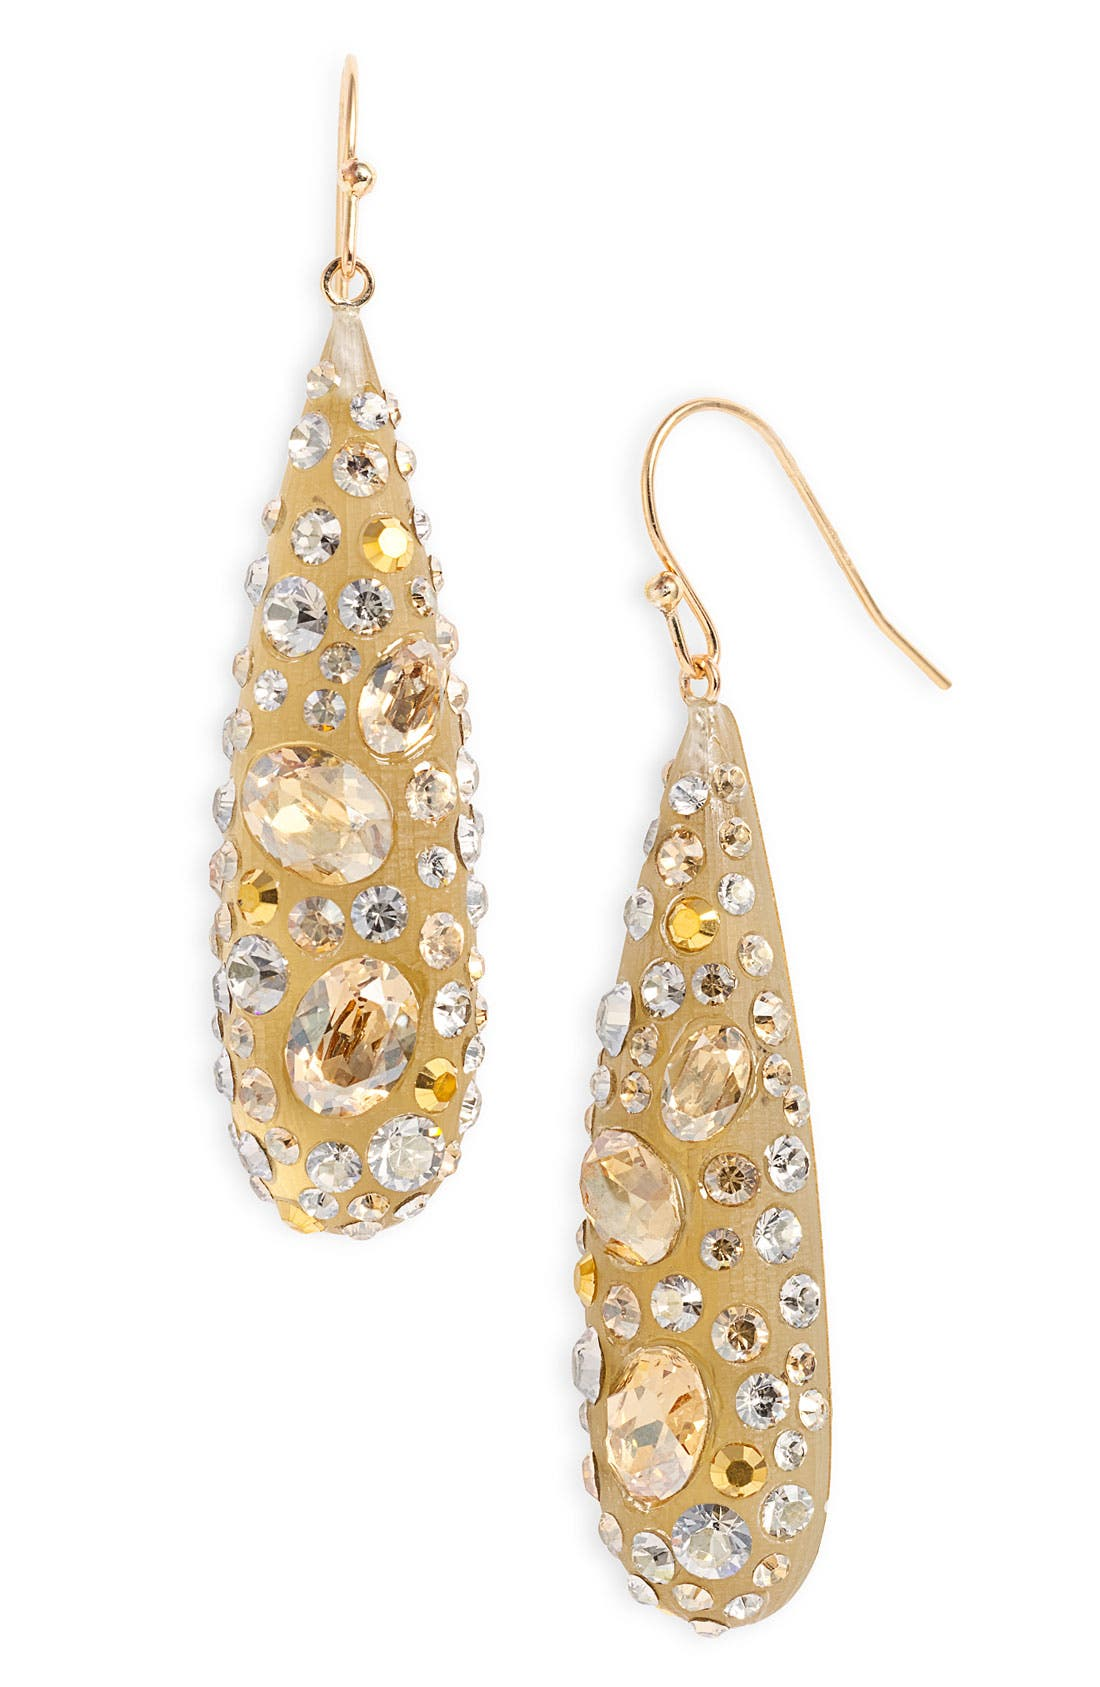 Alternate Image 1 Selected - Alexis Bittar 'Dust' Teardrop Earrings (Nordstrom Exclusive)